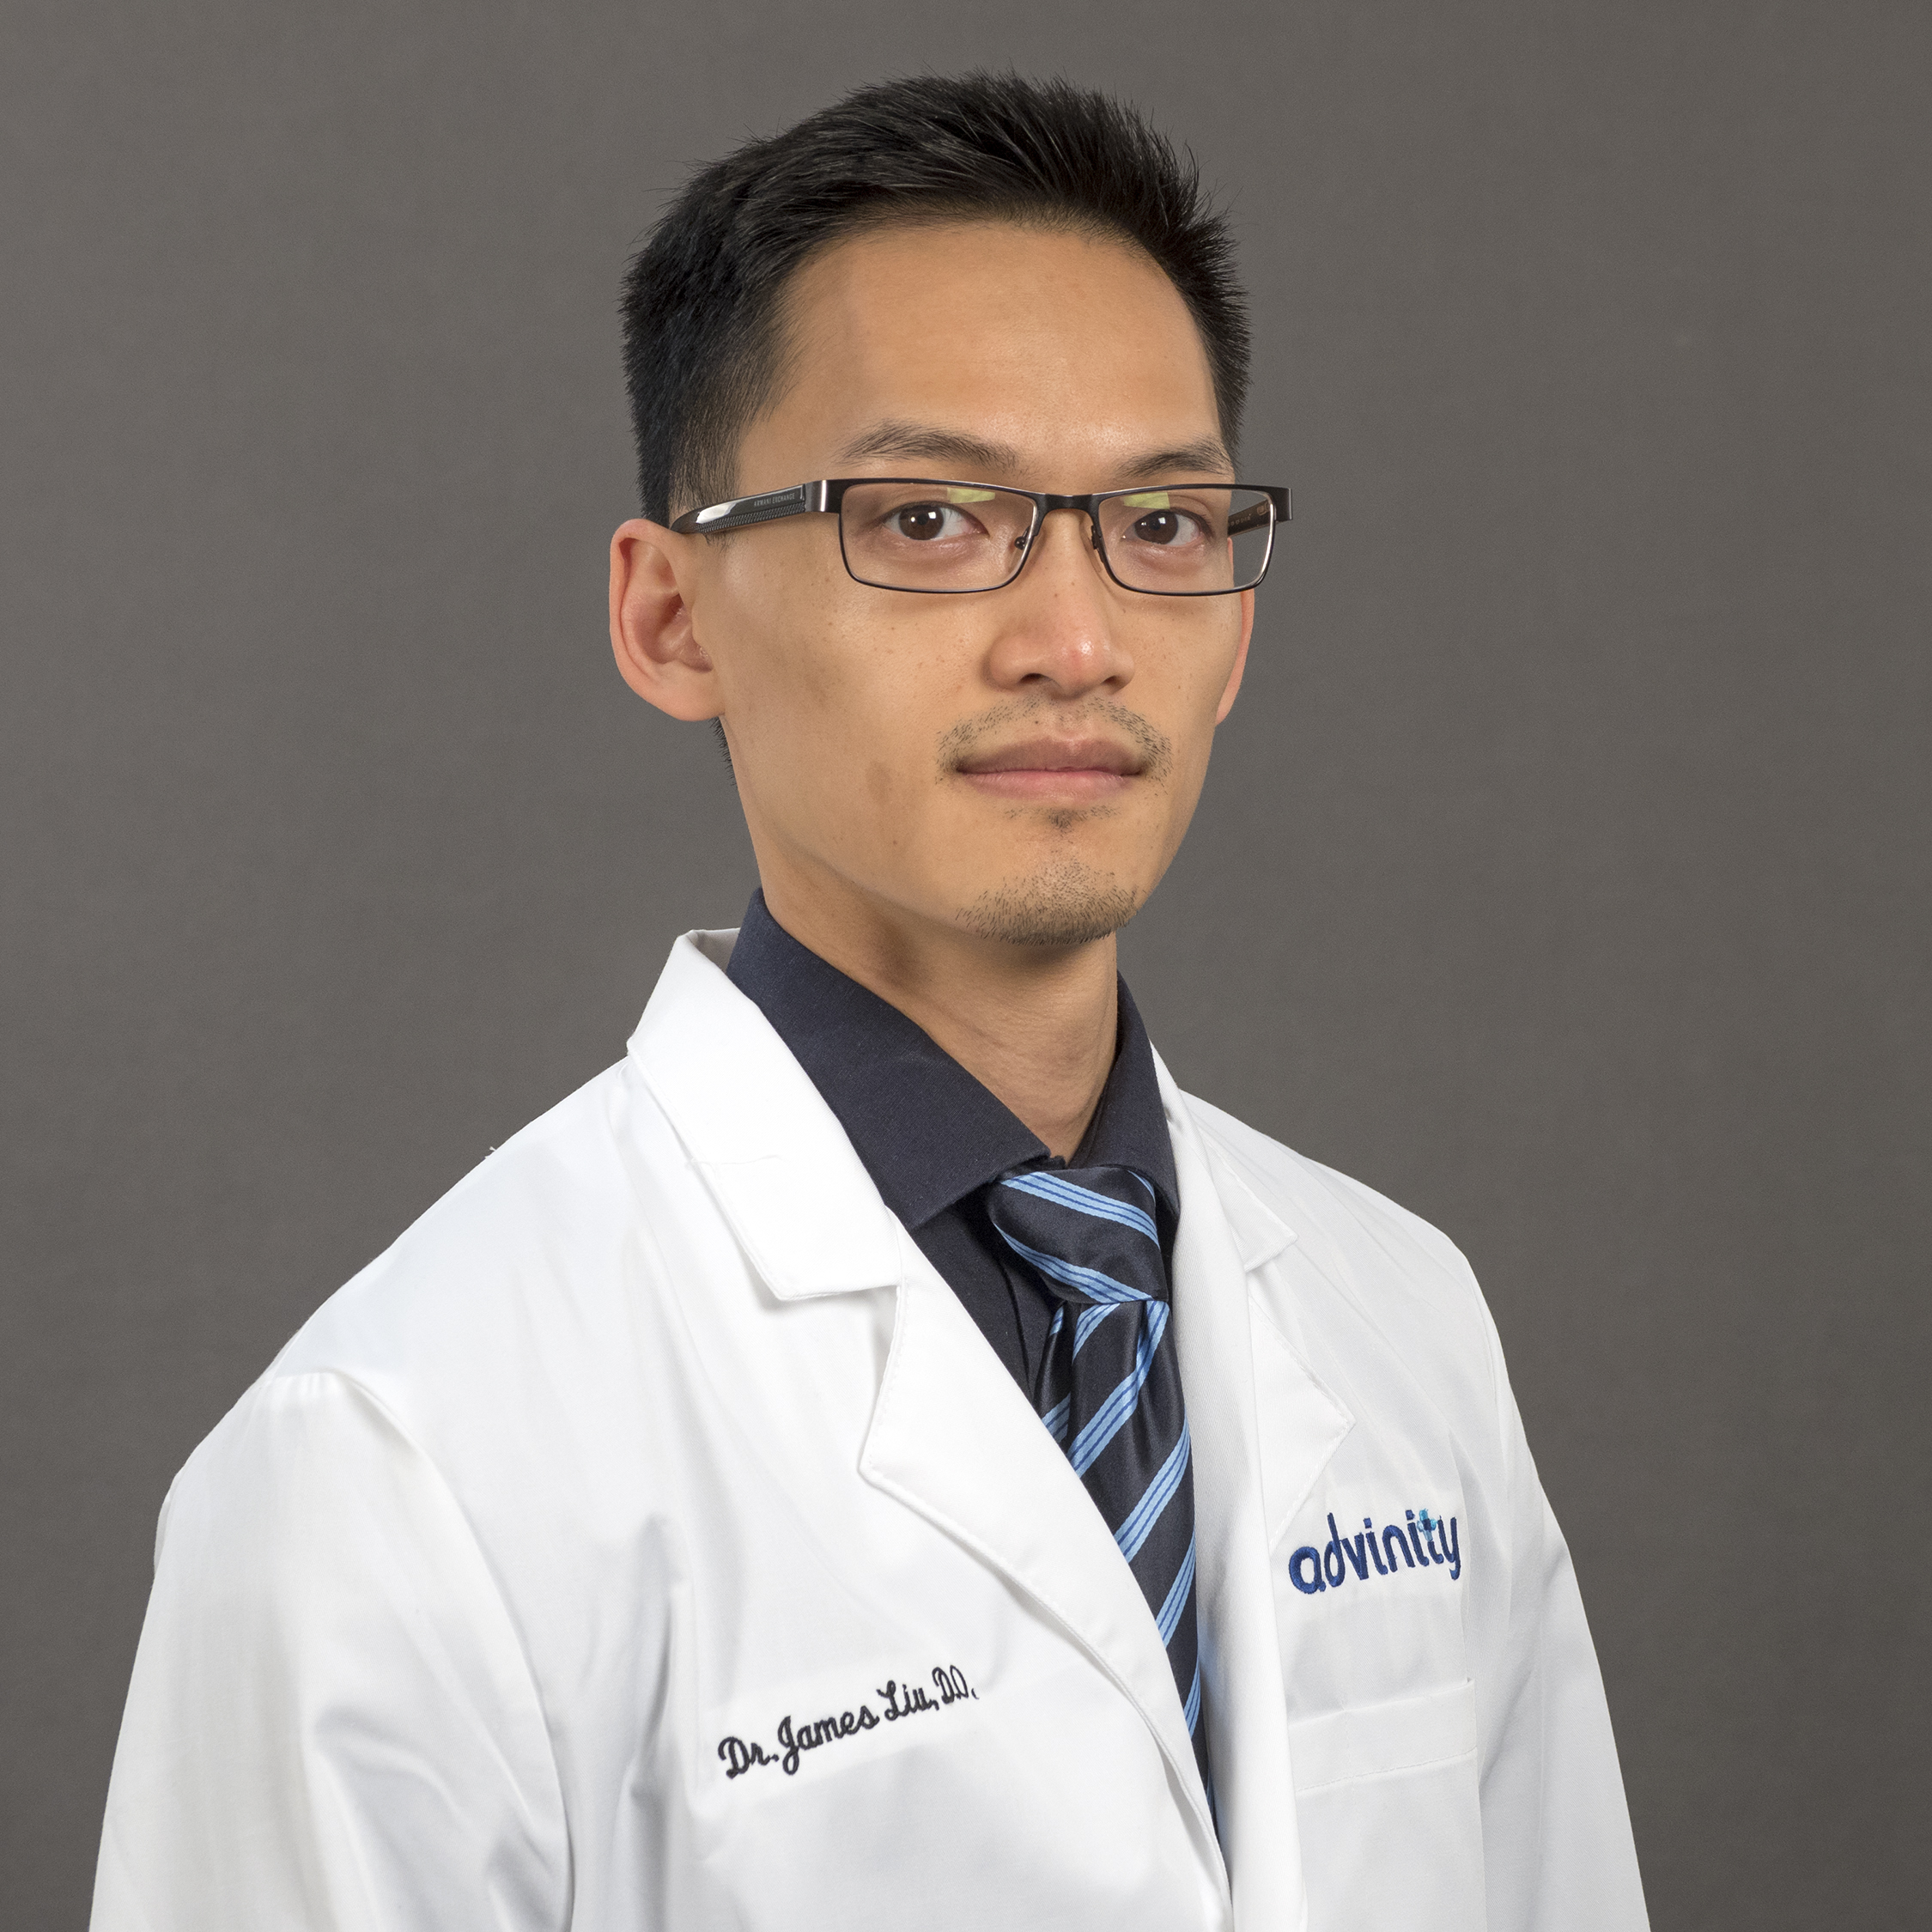 Dr. James Liu Headshot